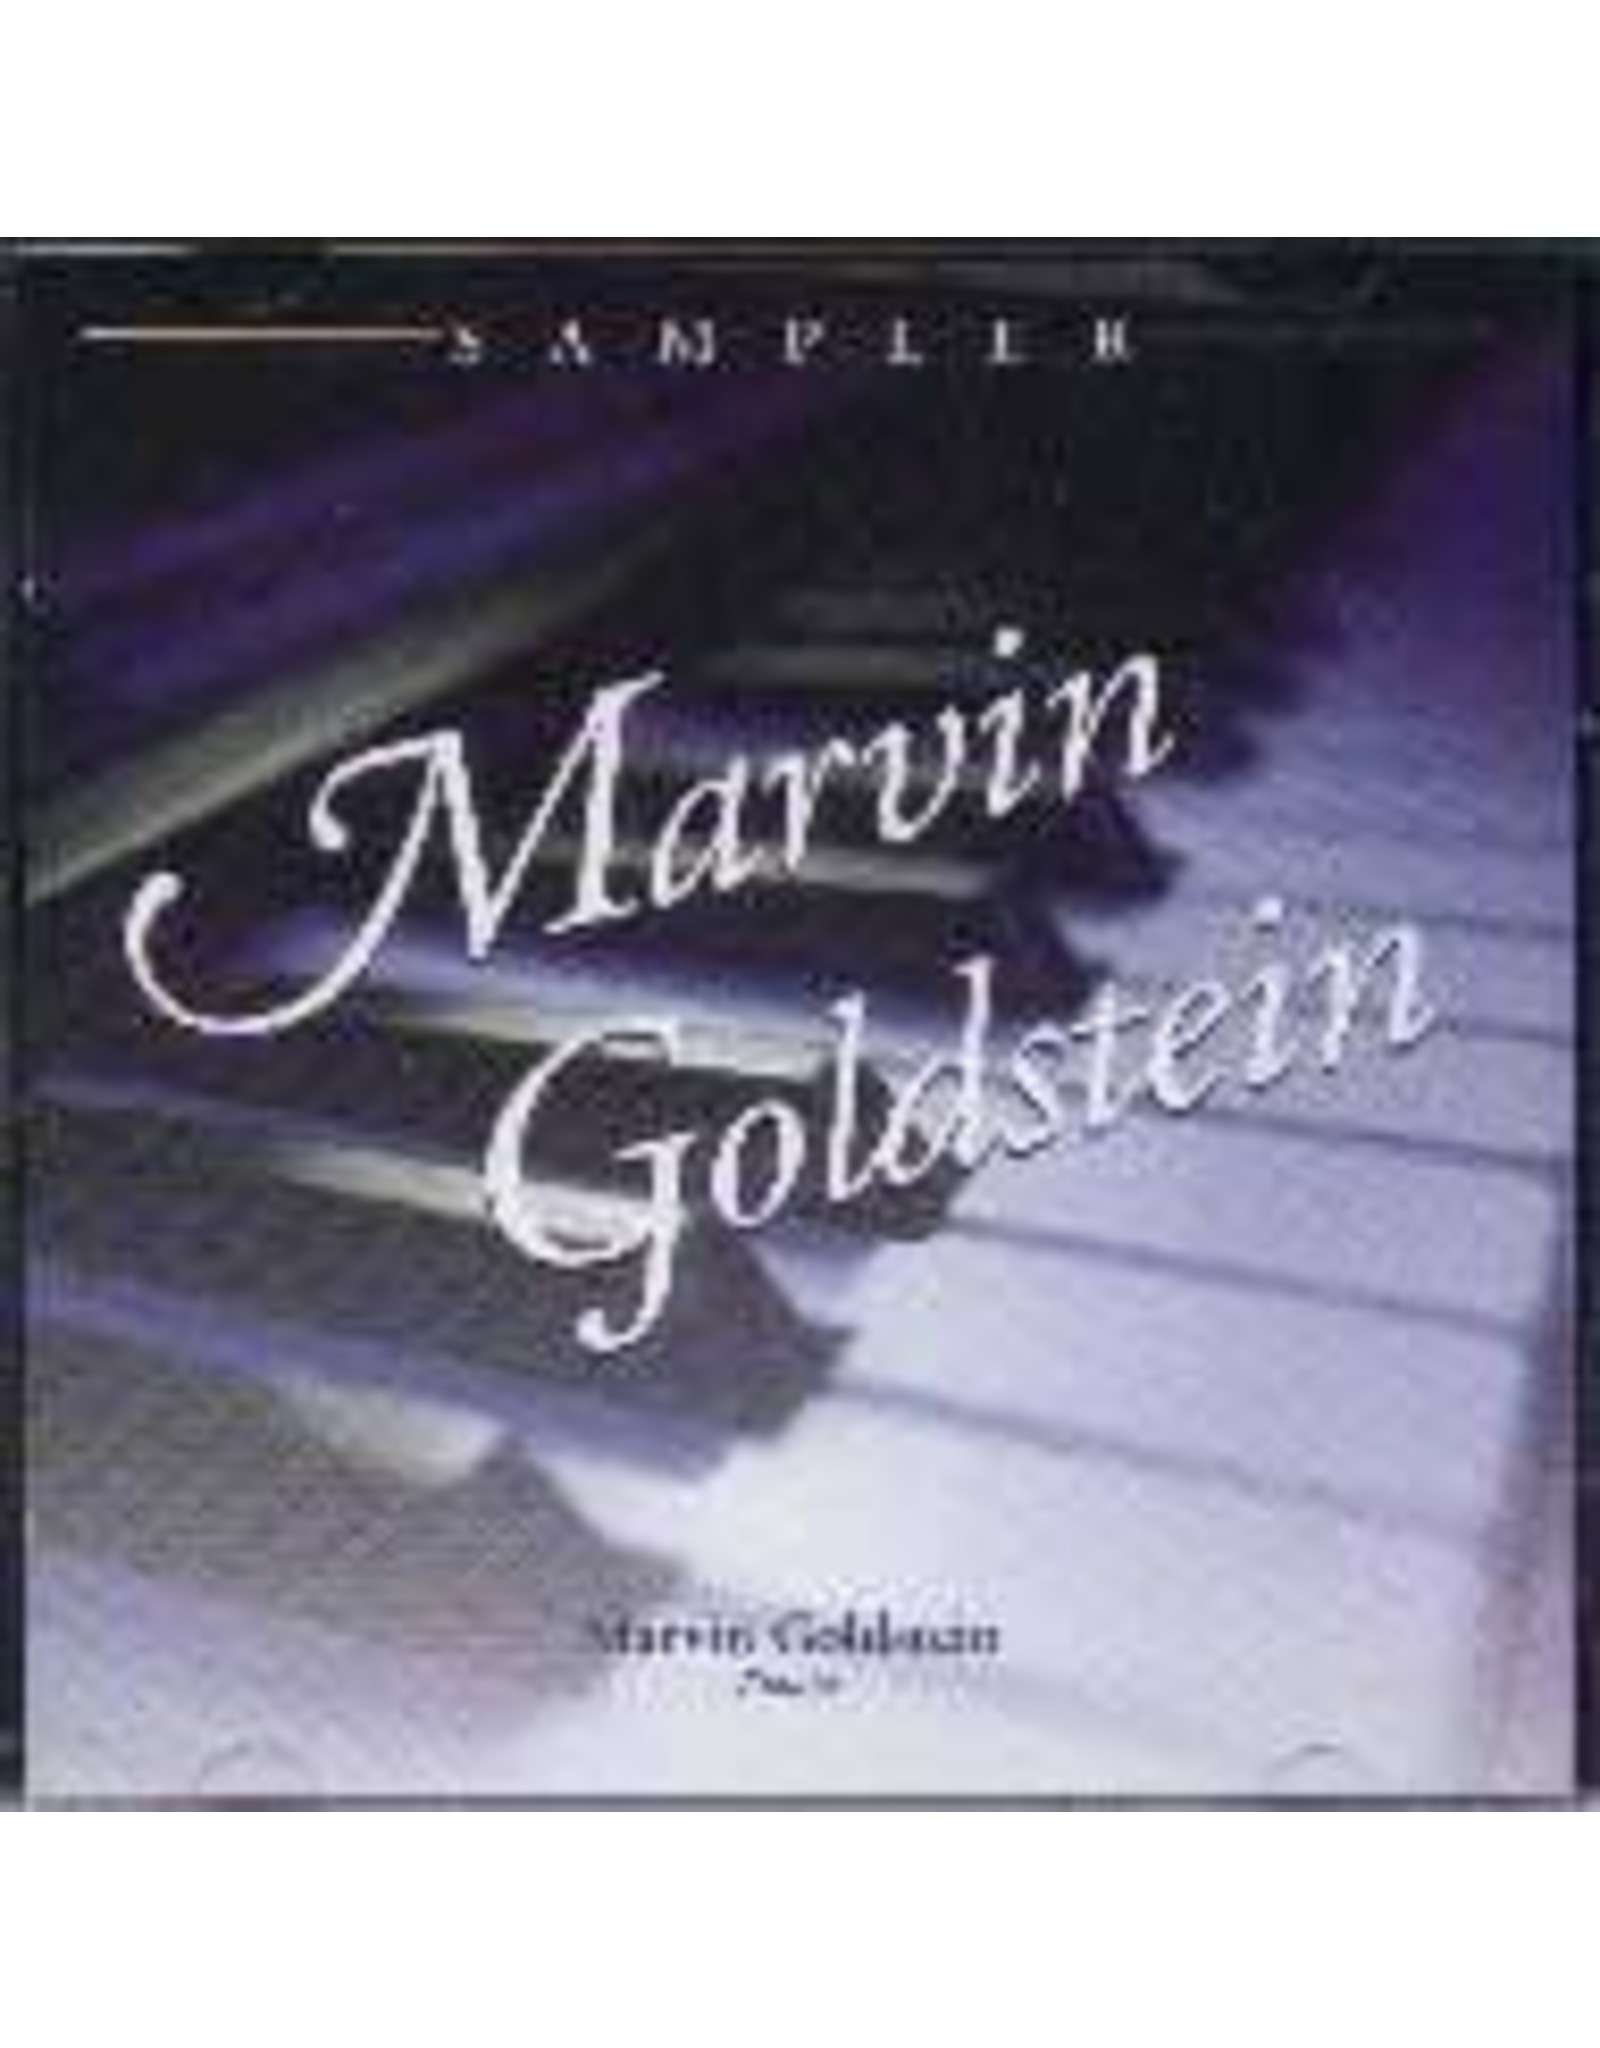 Marvin Goldstein Marvin Goldstein Sampler CD